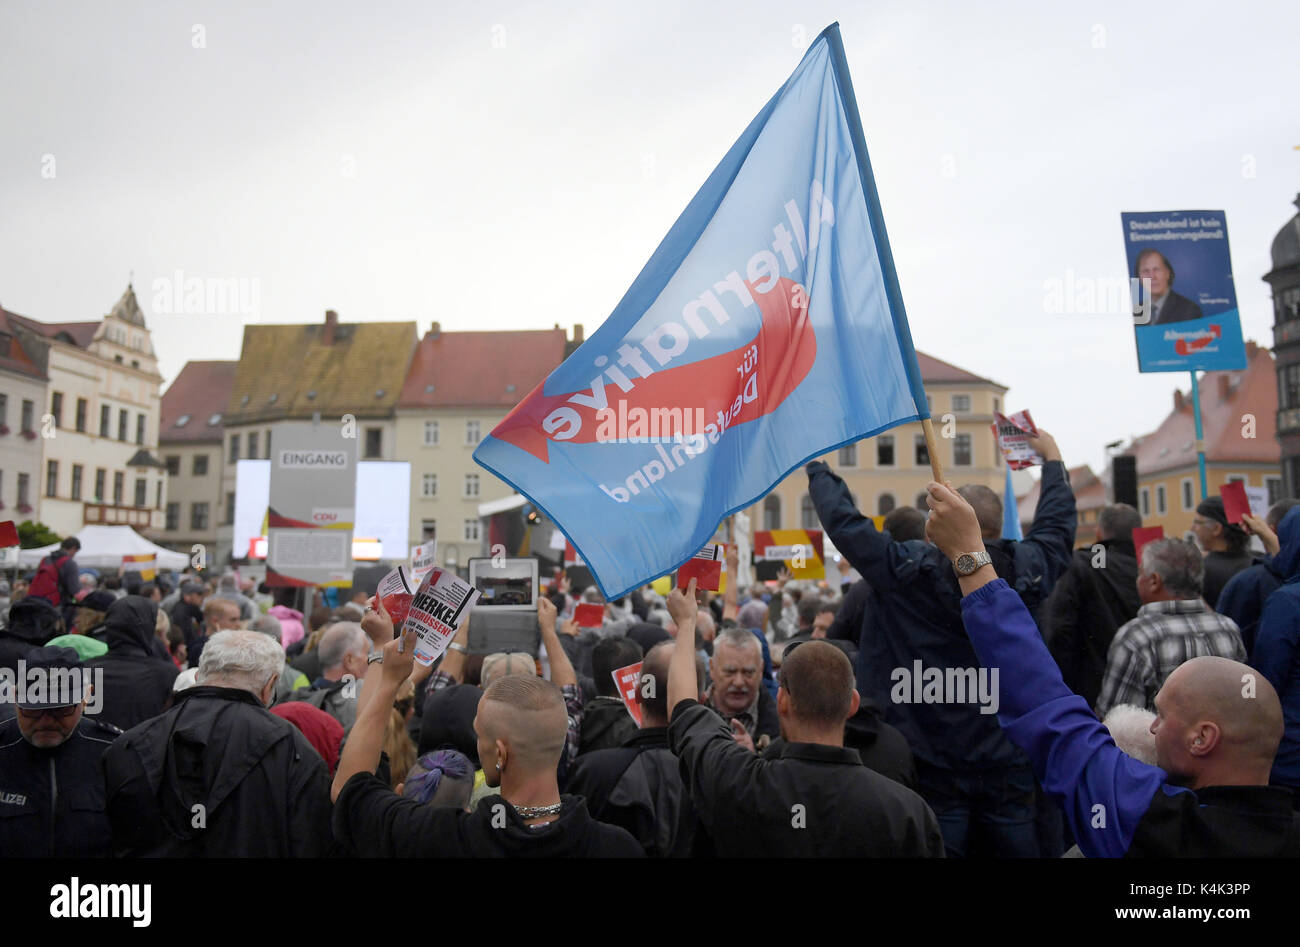 AfD(Alternative for Germany)supoorters protest at an CDUelection campaign in Torgau, Germany, - Stock Image